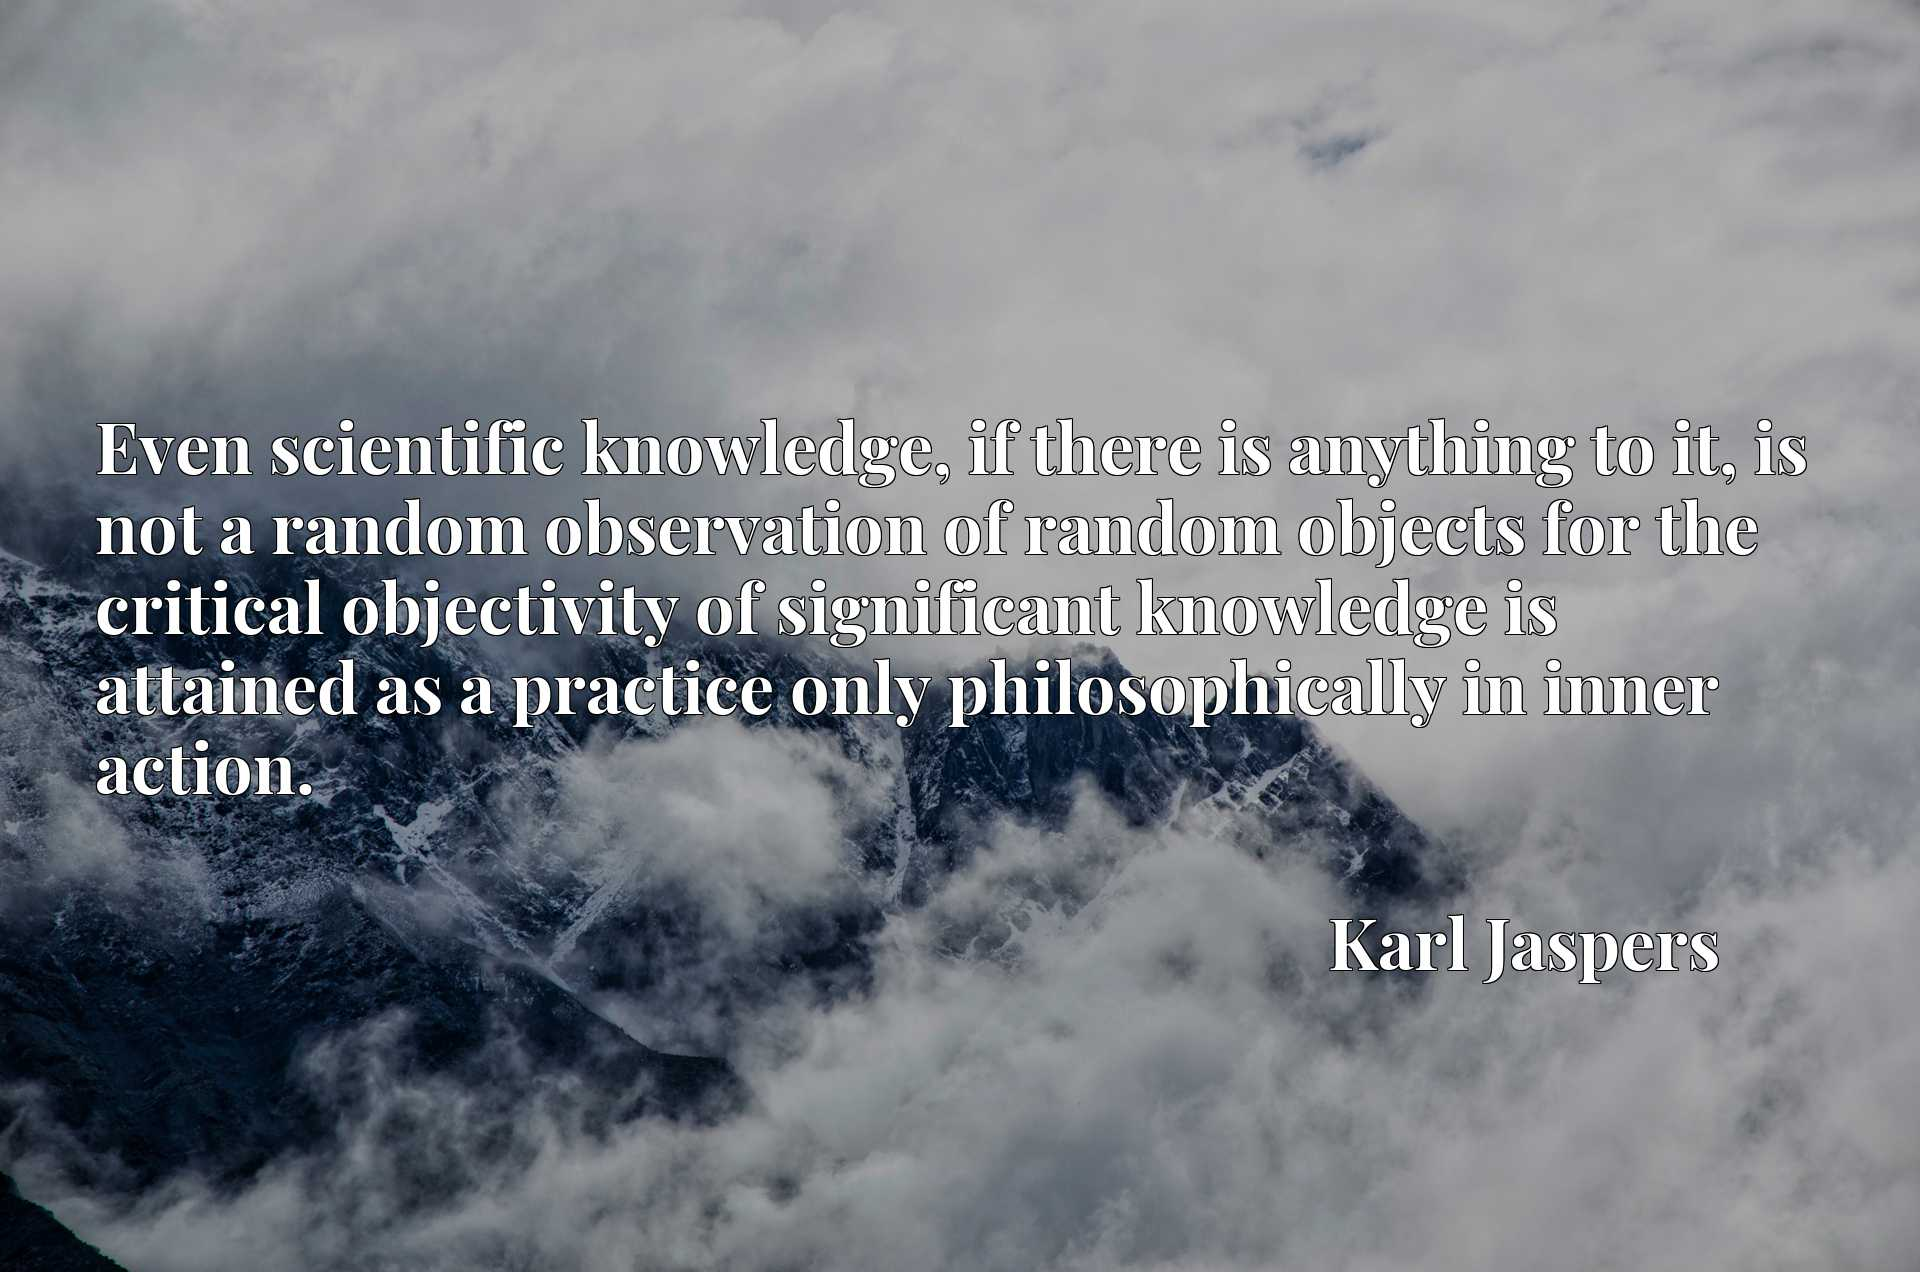 Quote Picture :Even scientific knowledge, if there is anything to it, is not a random observation of random objects for the critical objectivity of significant knowledge is attained as a practice only philosophically in inner action.